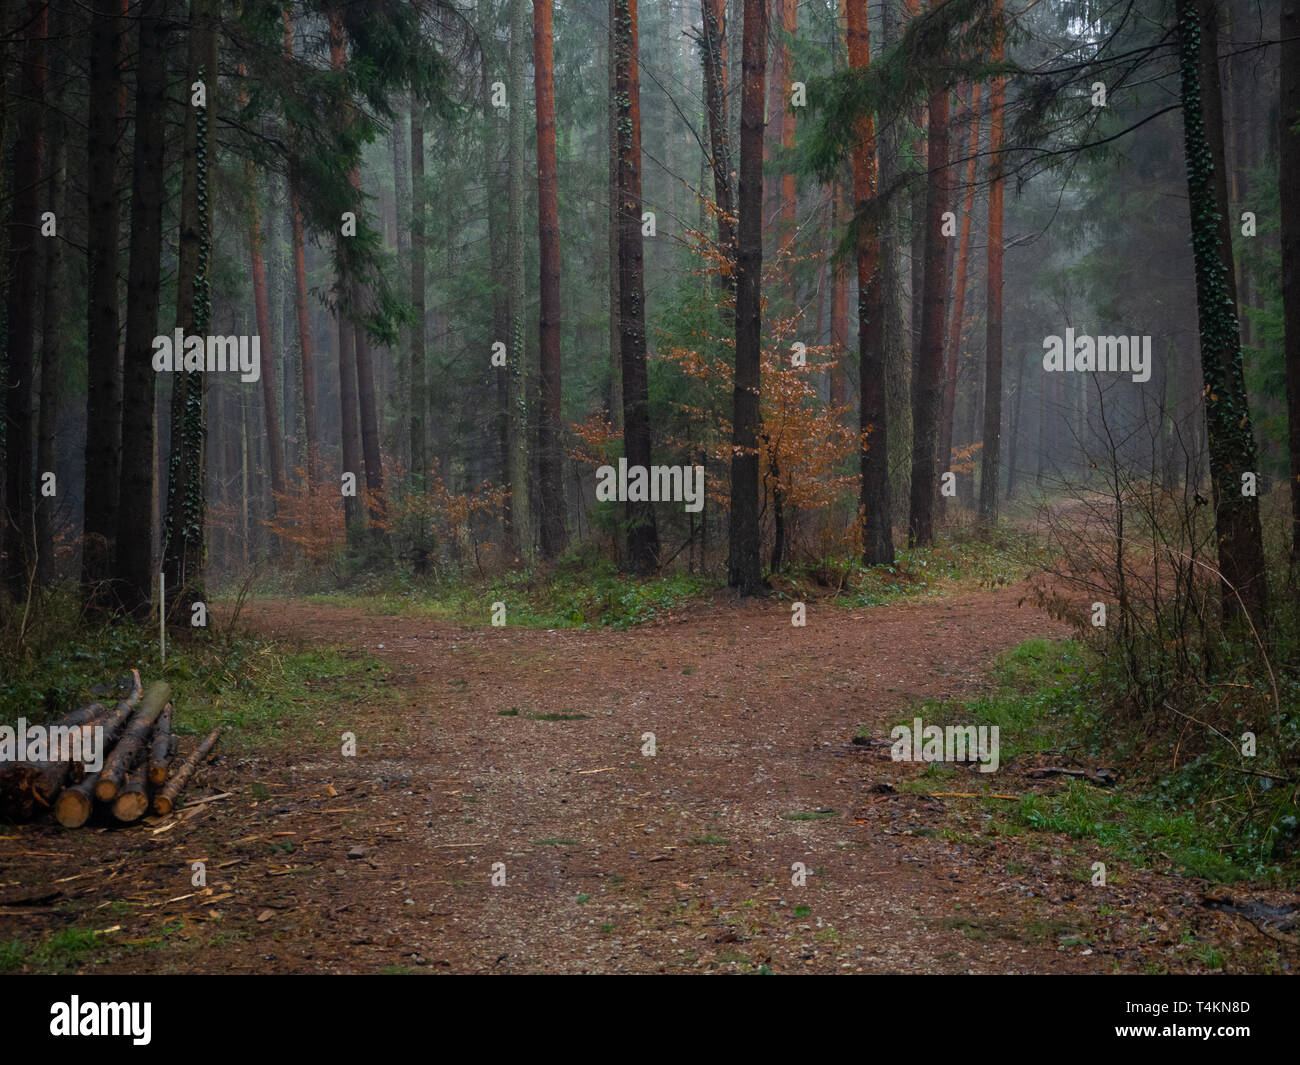 Forest track in autumn - Stock Image